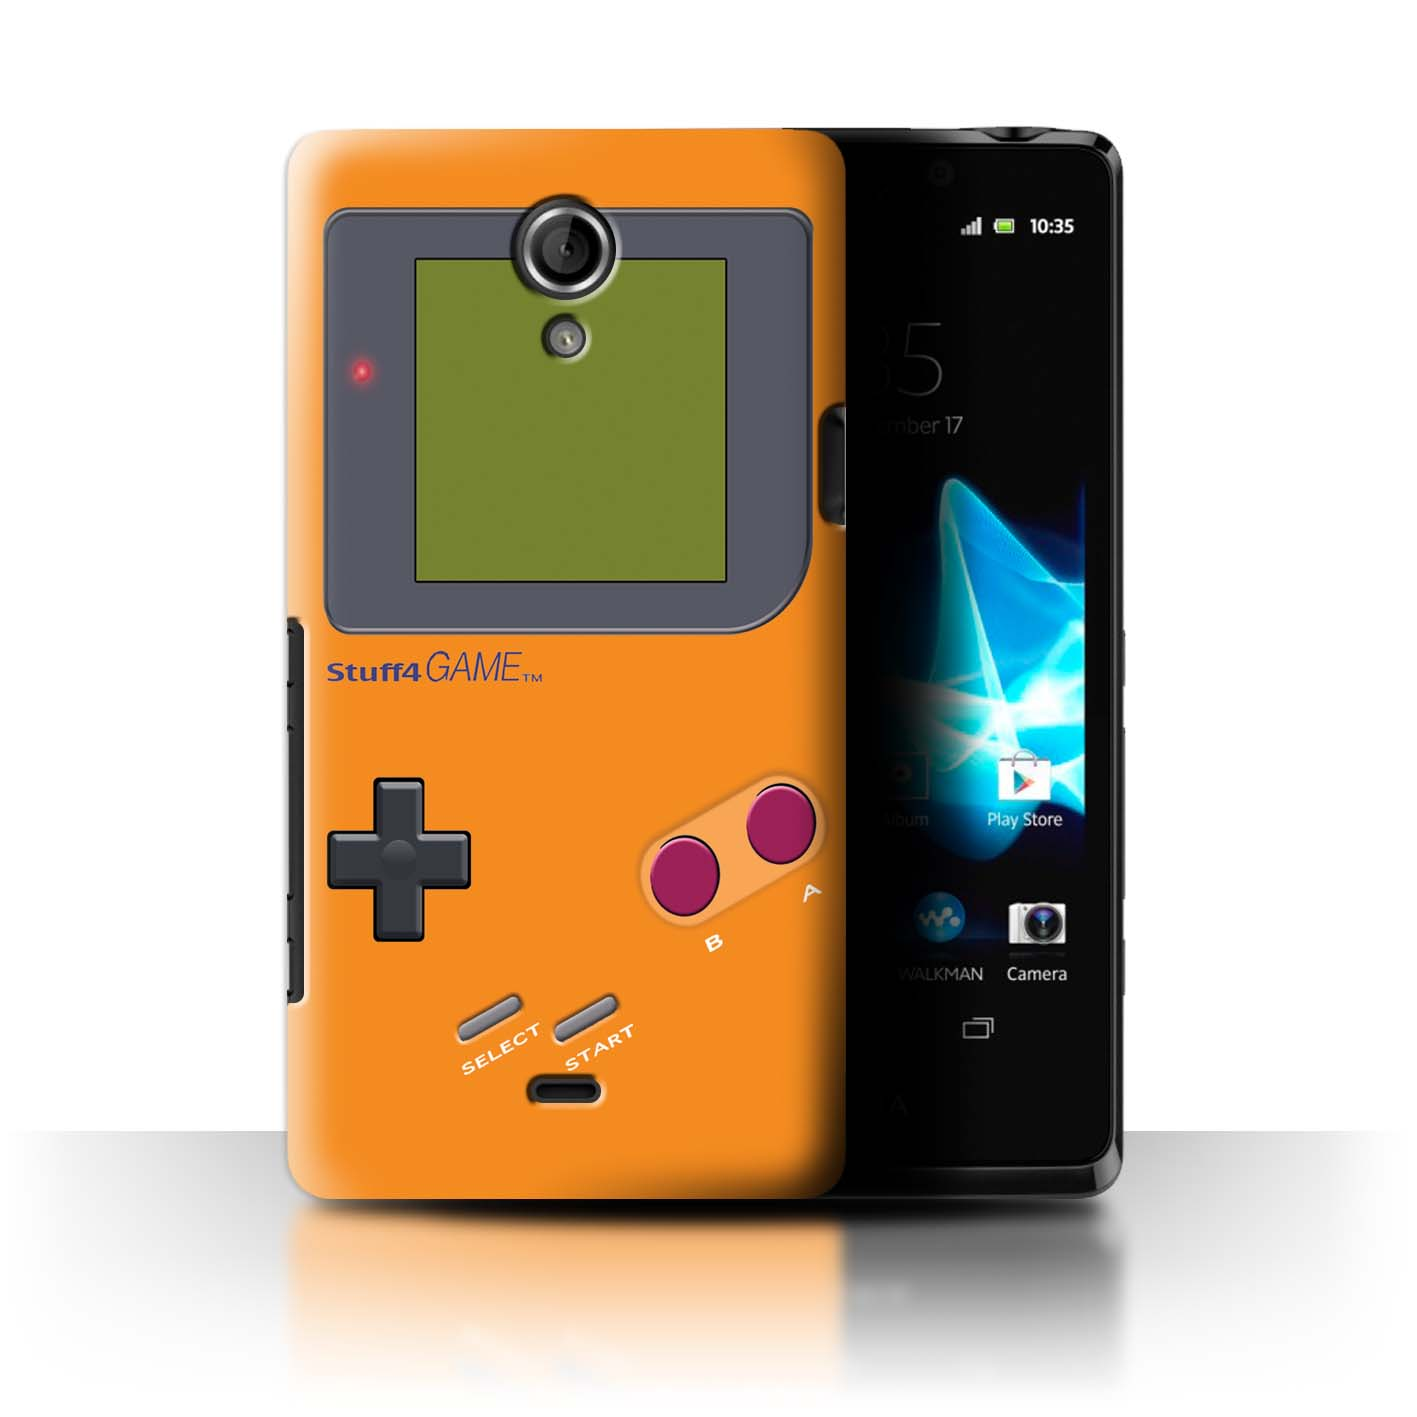 Stuff4-Huelle-Case-Backcover-fuer-Sony-Xperia-T-LT30-Videogamer-Gameboy